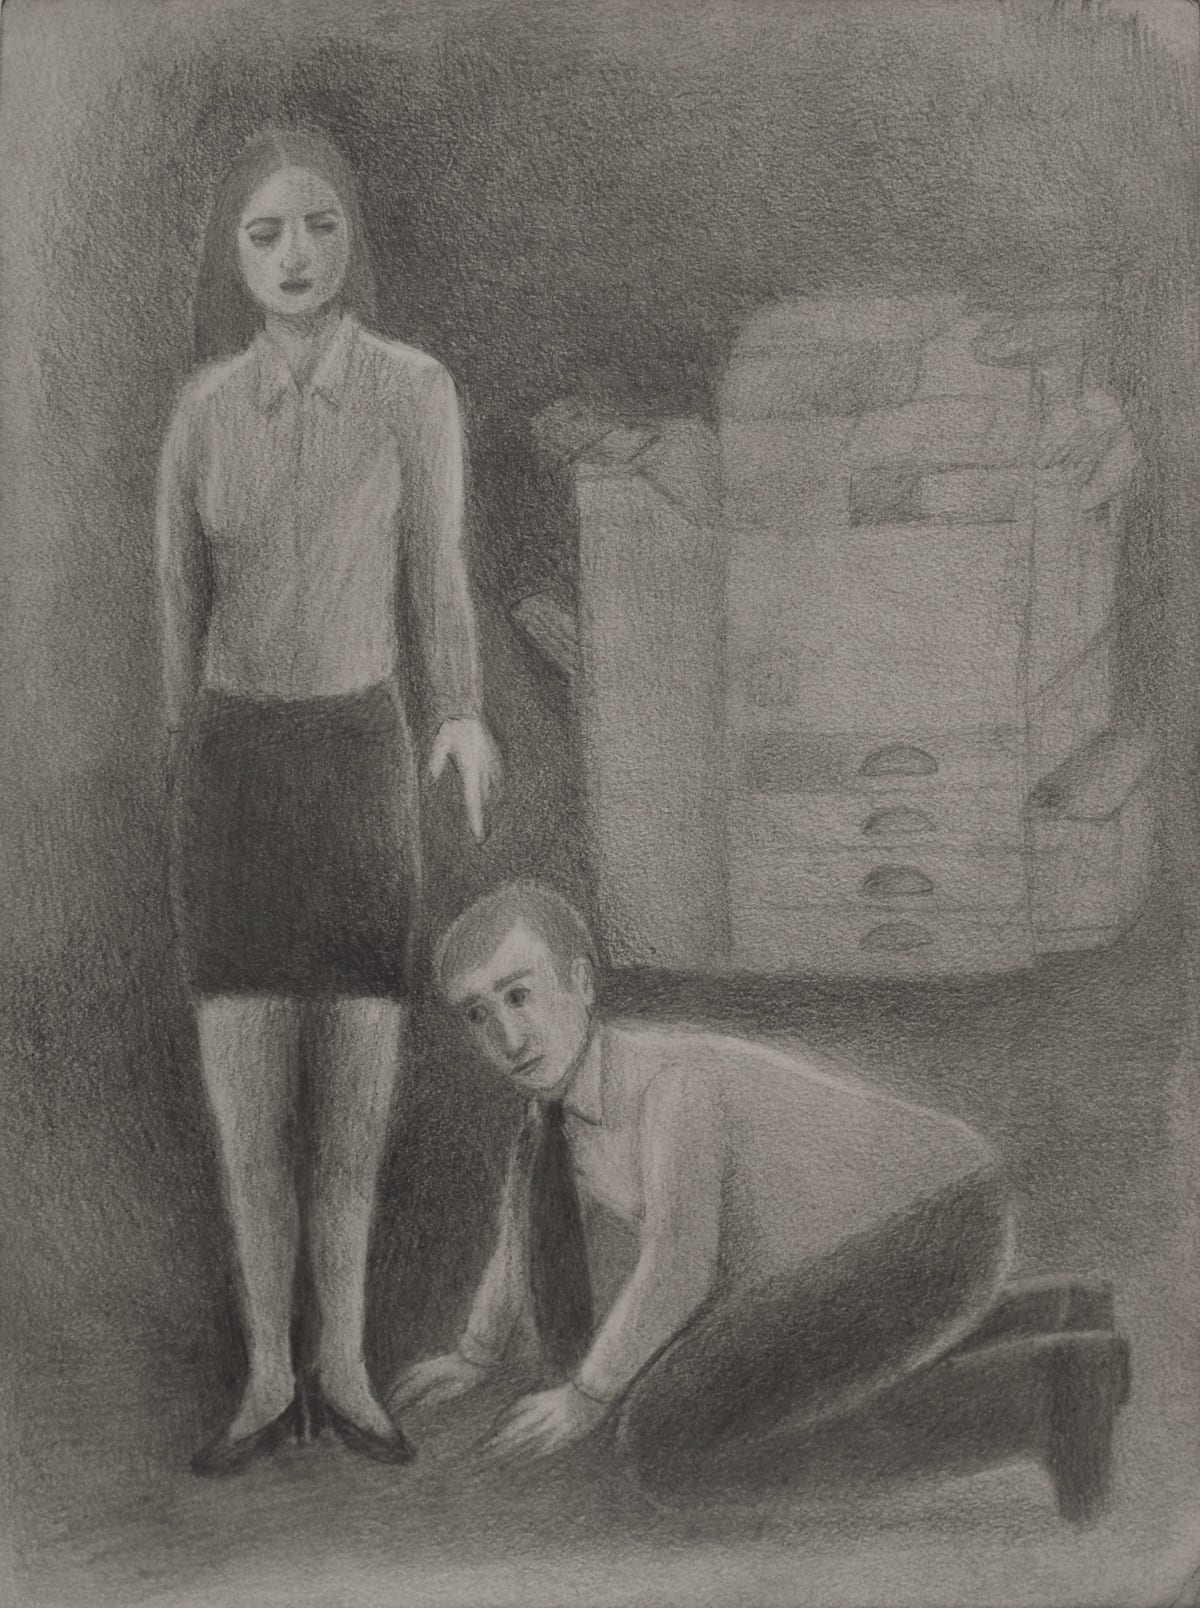 Vanessa Gully Santiago Errand Boy, 2018 Graphite on paper 12 x 9 inches